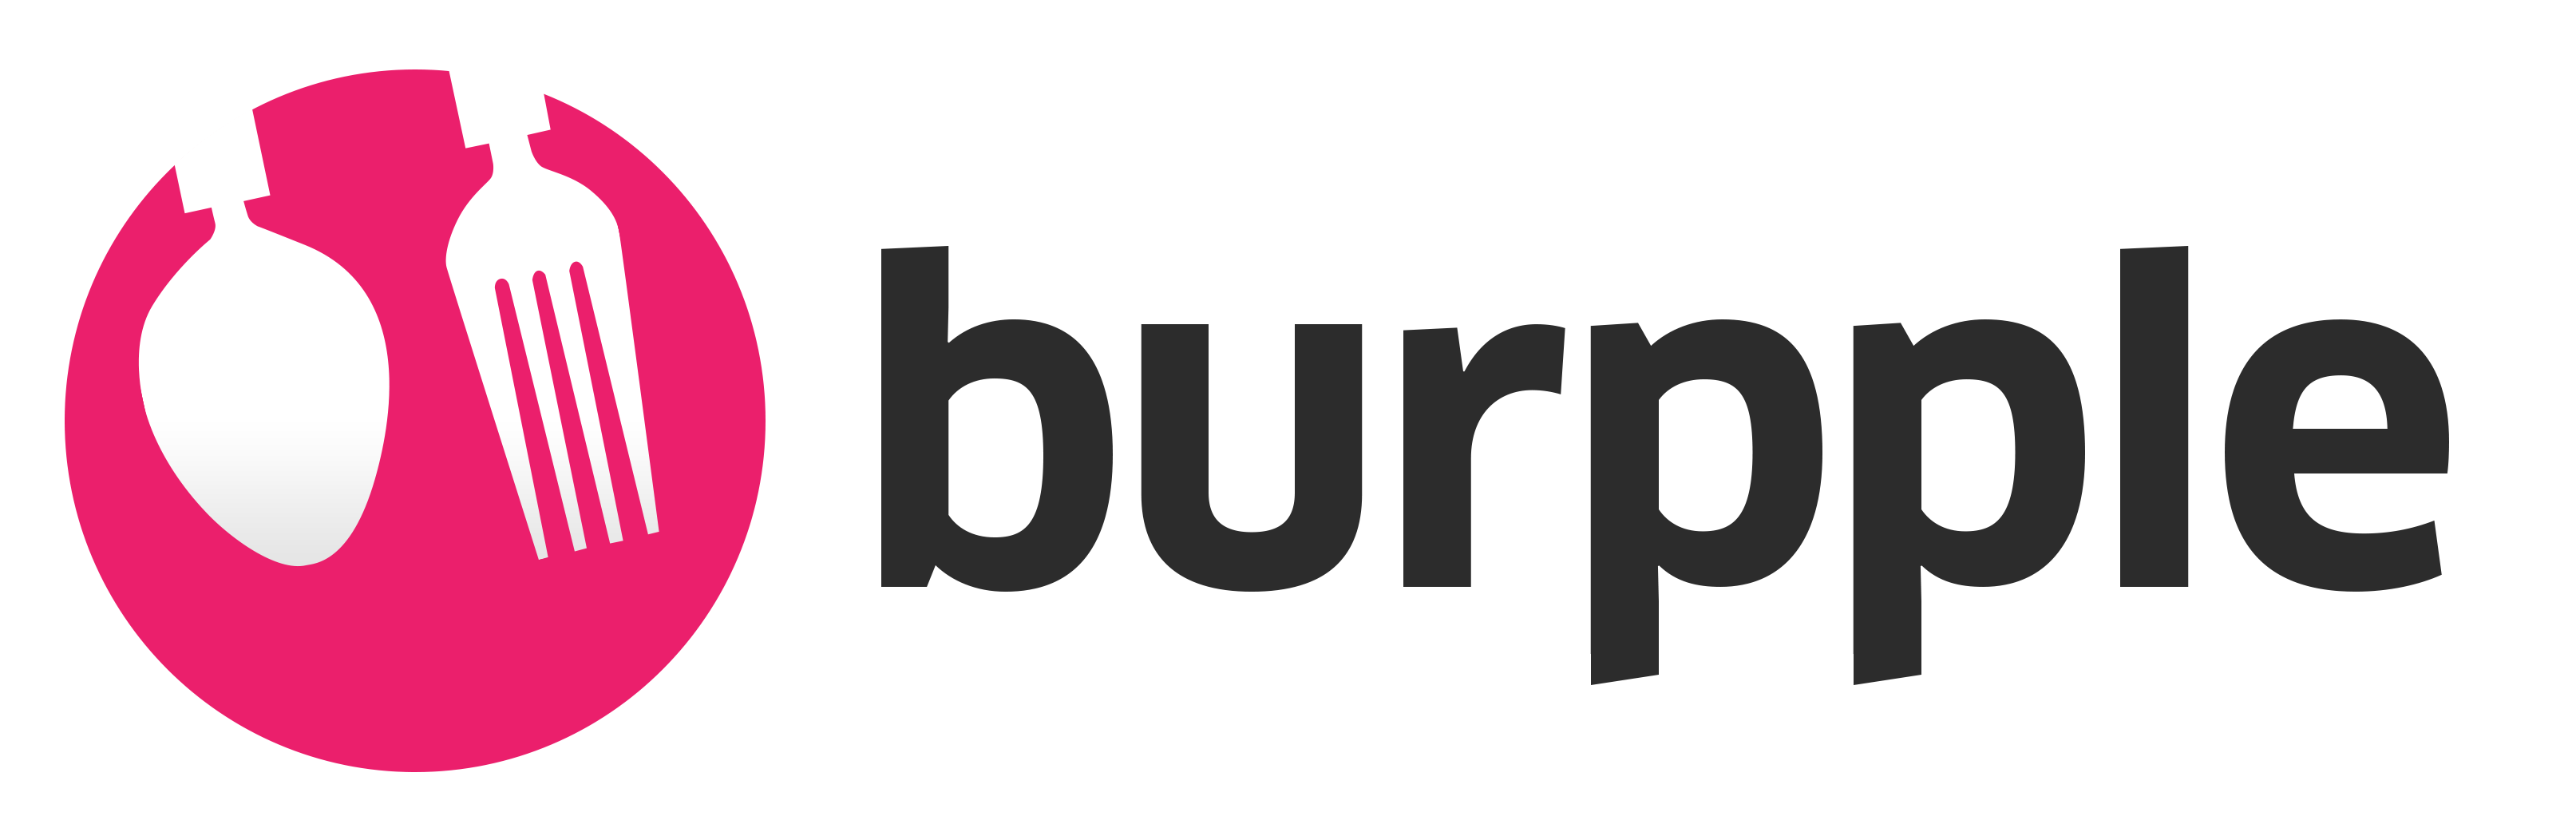 burpple_logo